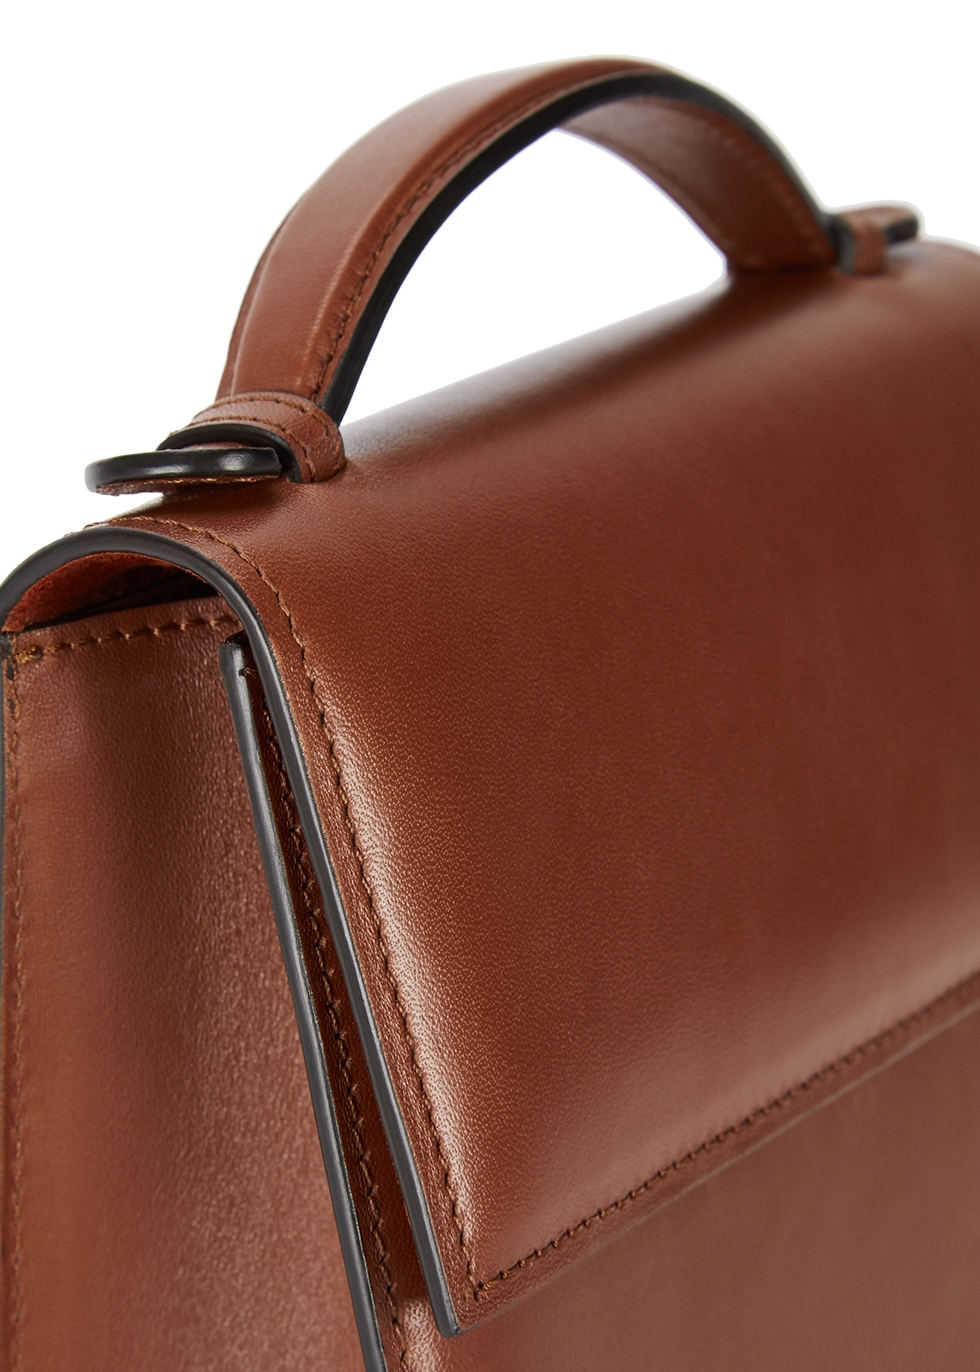 Brown leather top-handle bag - Hunting Season